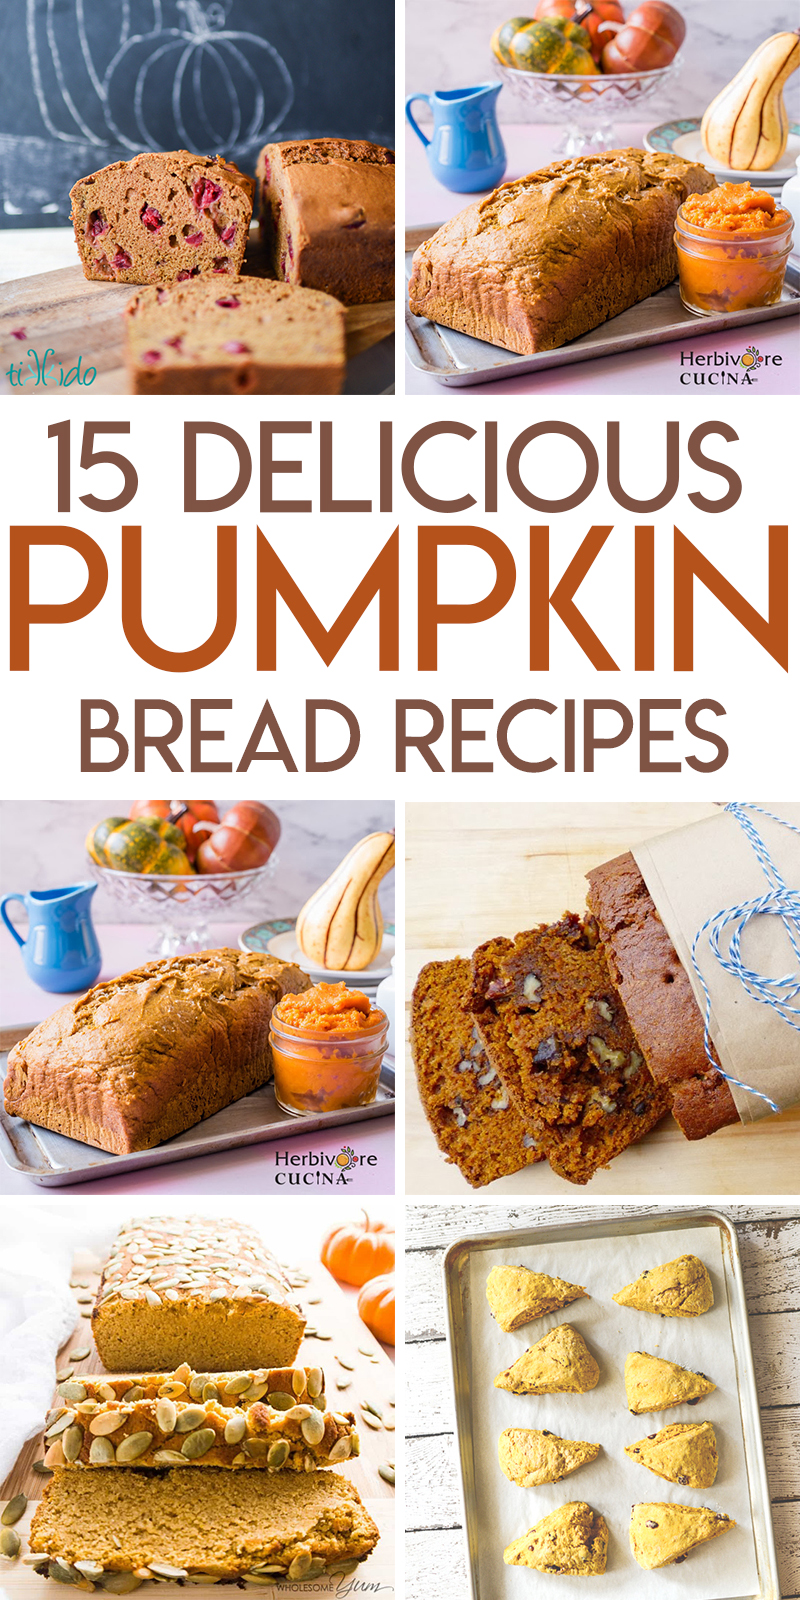 15 perfect pumpkin bread recipes